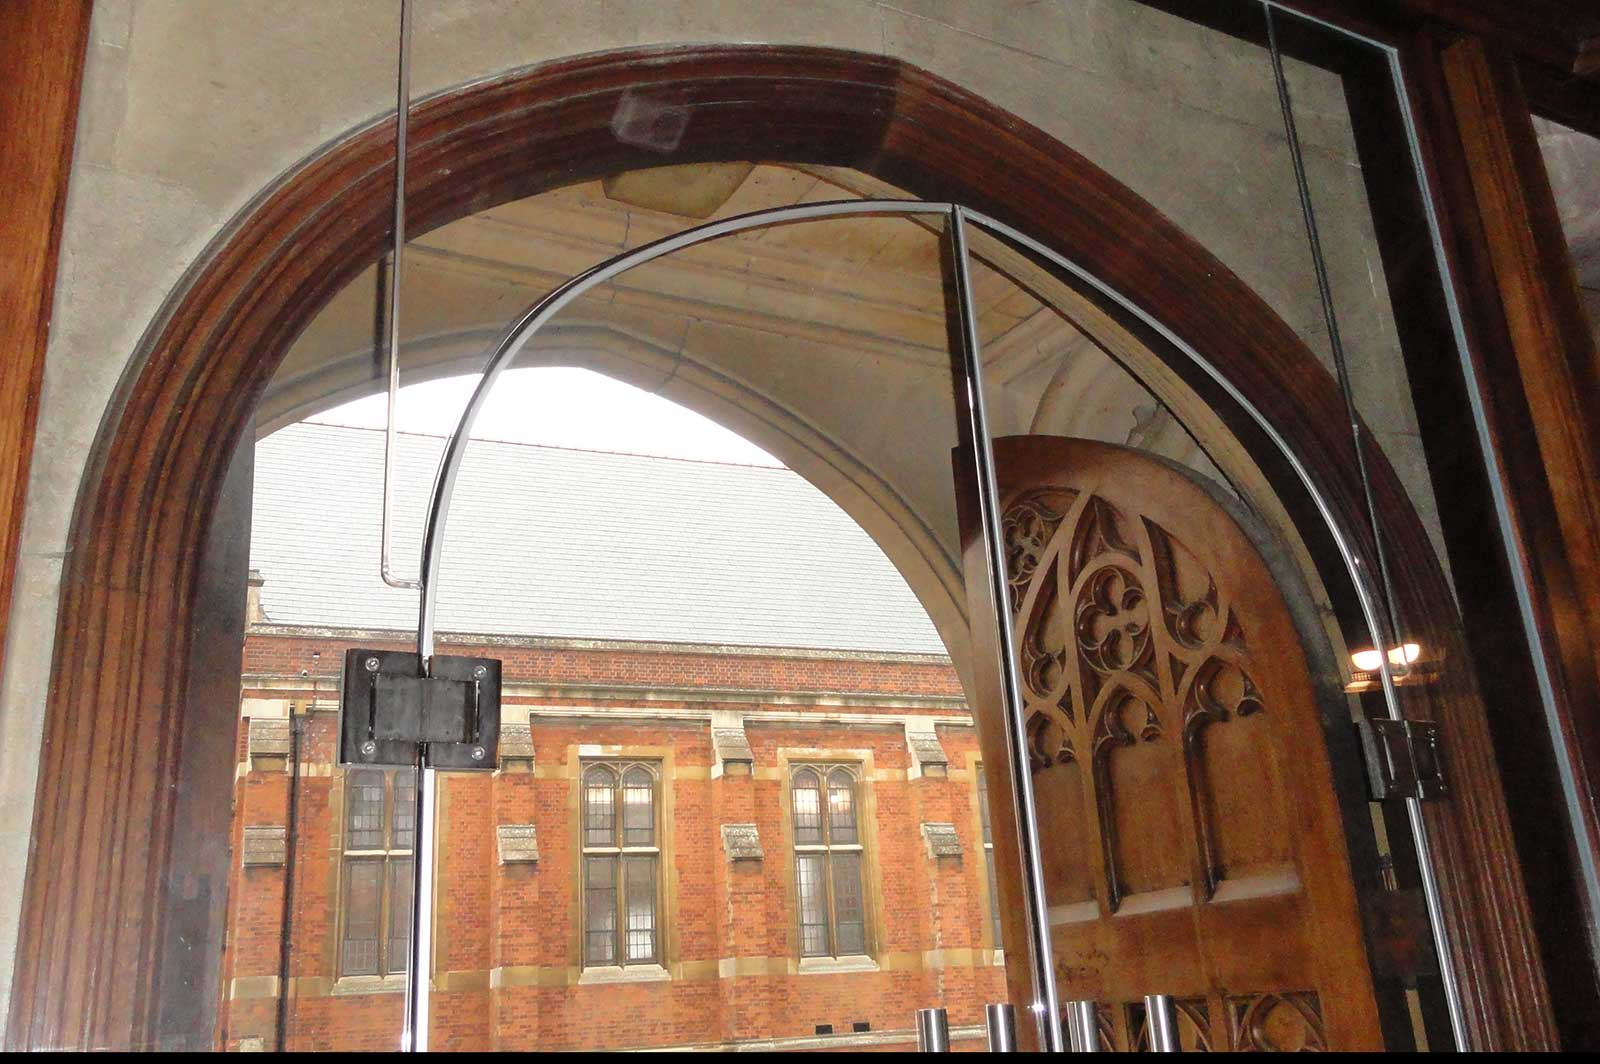 Bespoke Arch Shaped Glass Doors, The Leys School